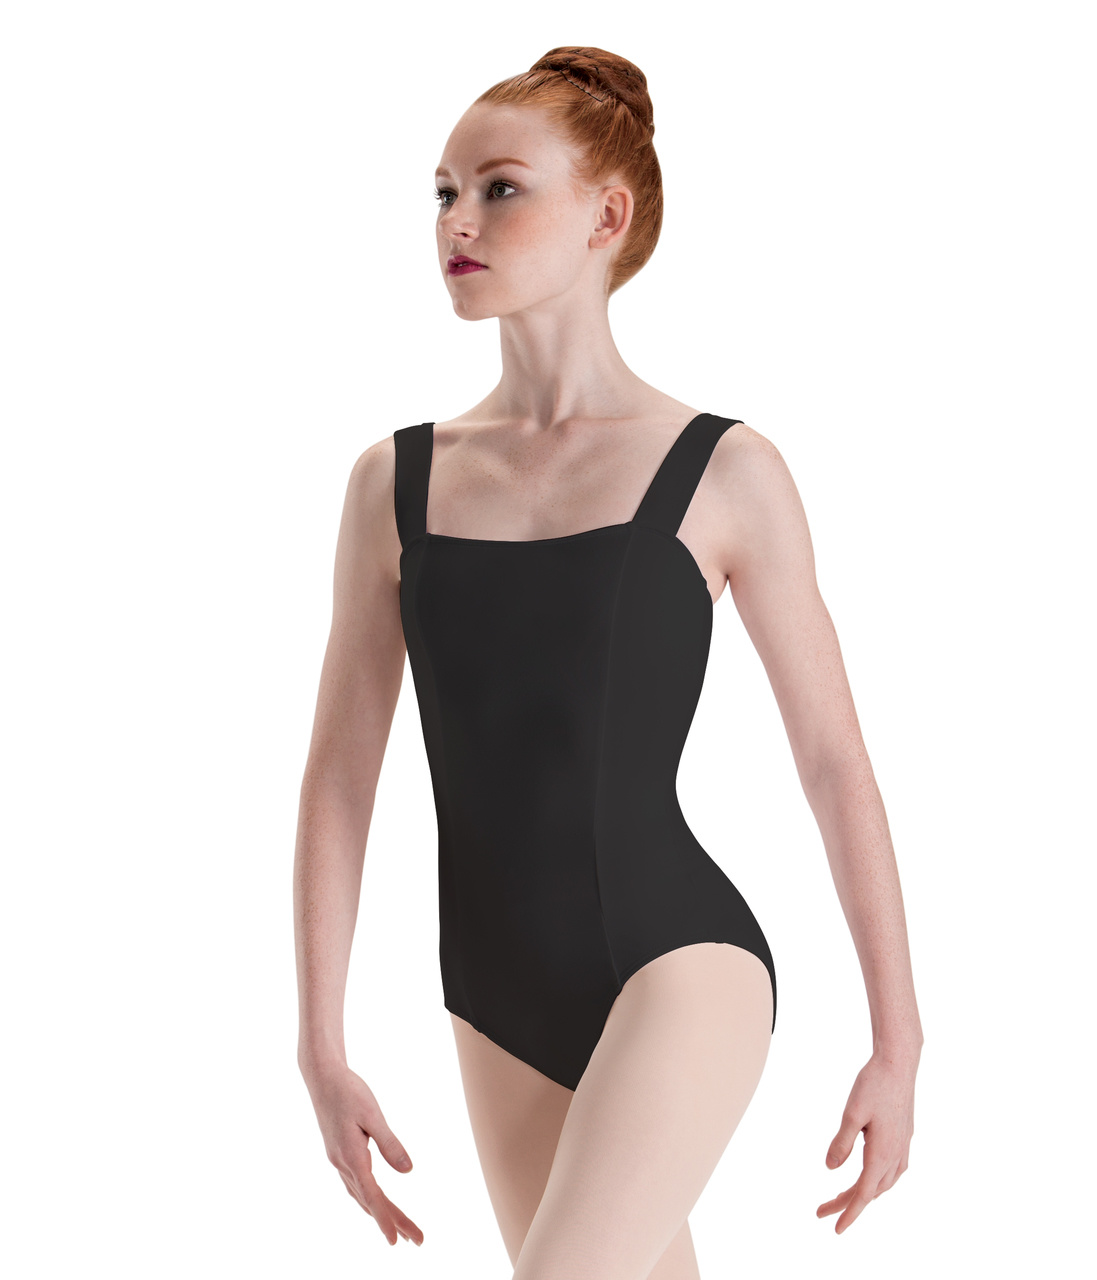 MOTIONWEAR WIDE STRAP PRINCESS CAMISOLE LEOTARD (2643C)